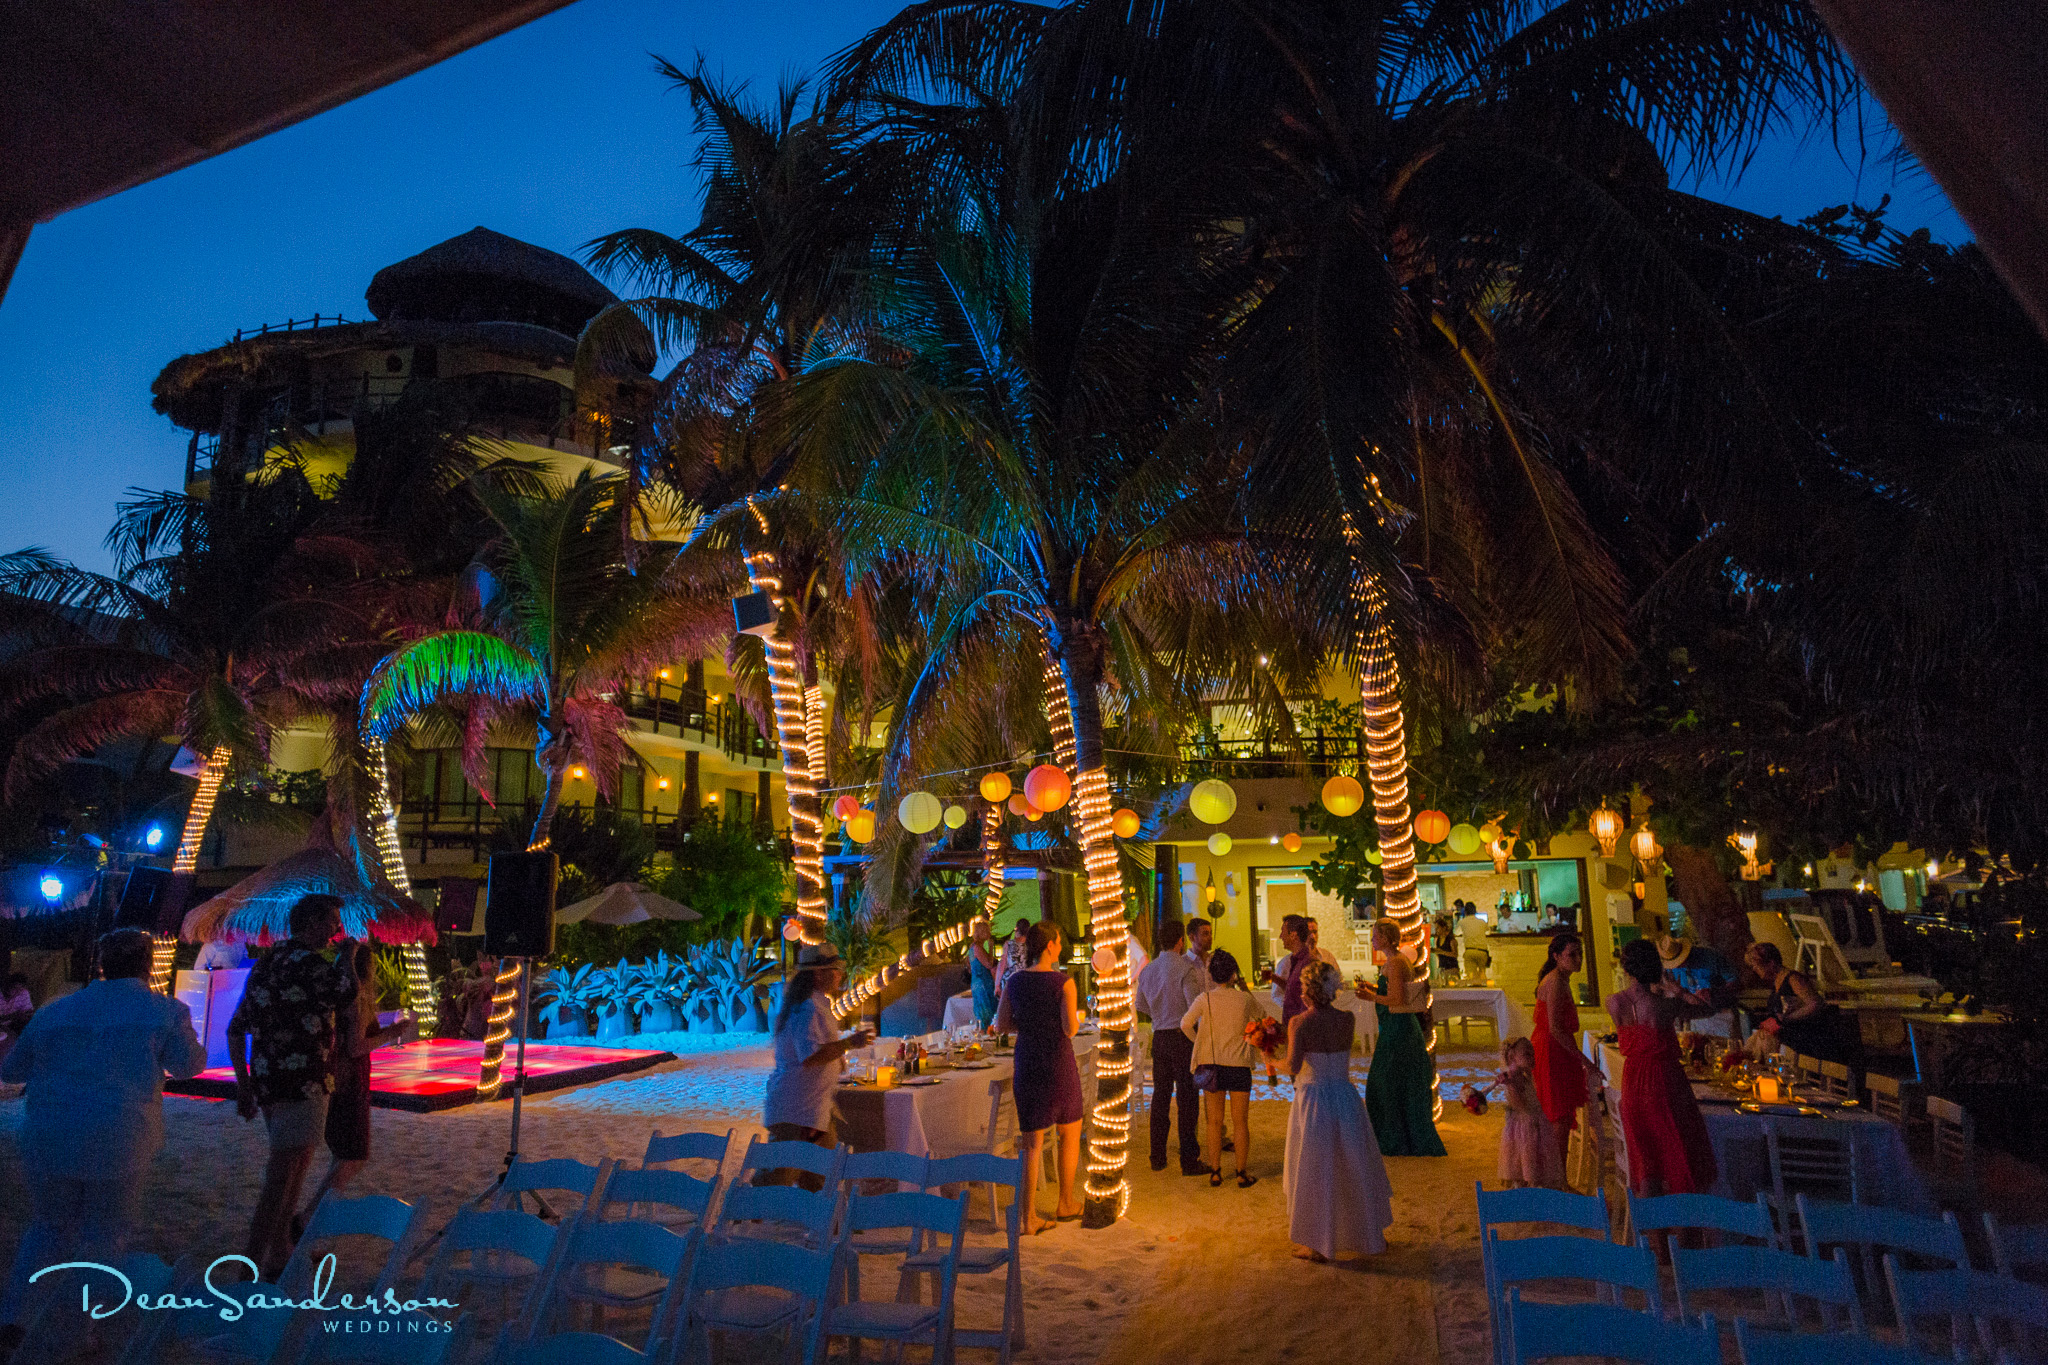 Weddings in Playa Destination Wedding Planners